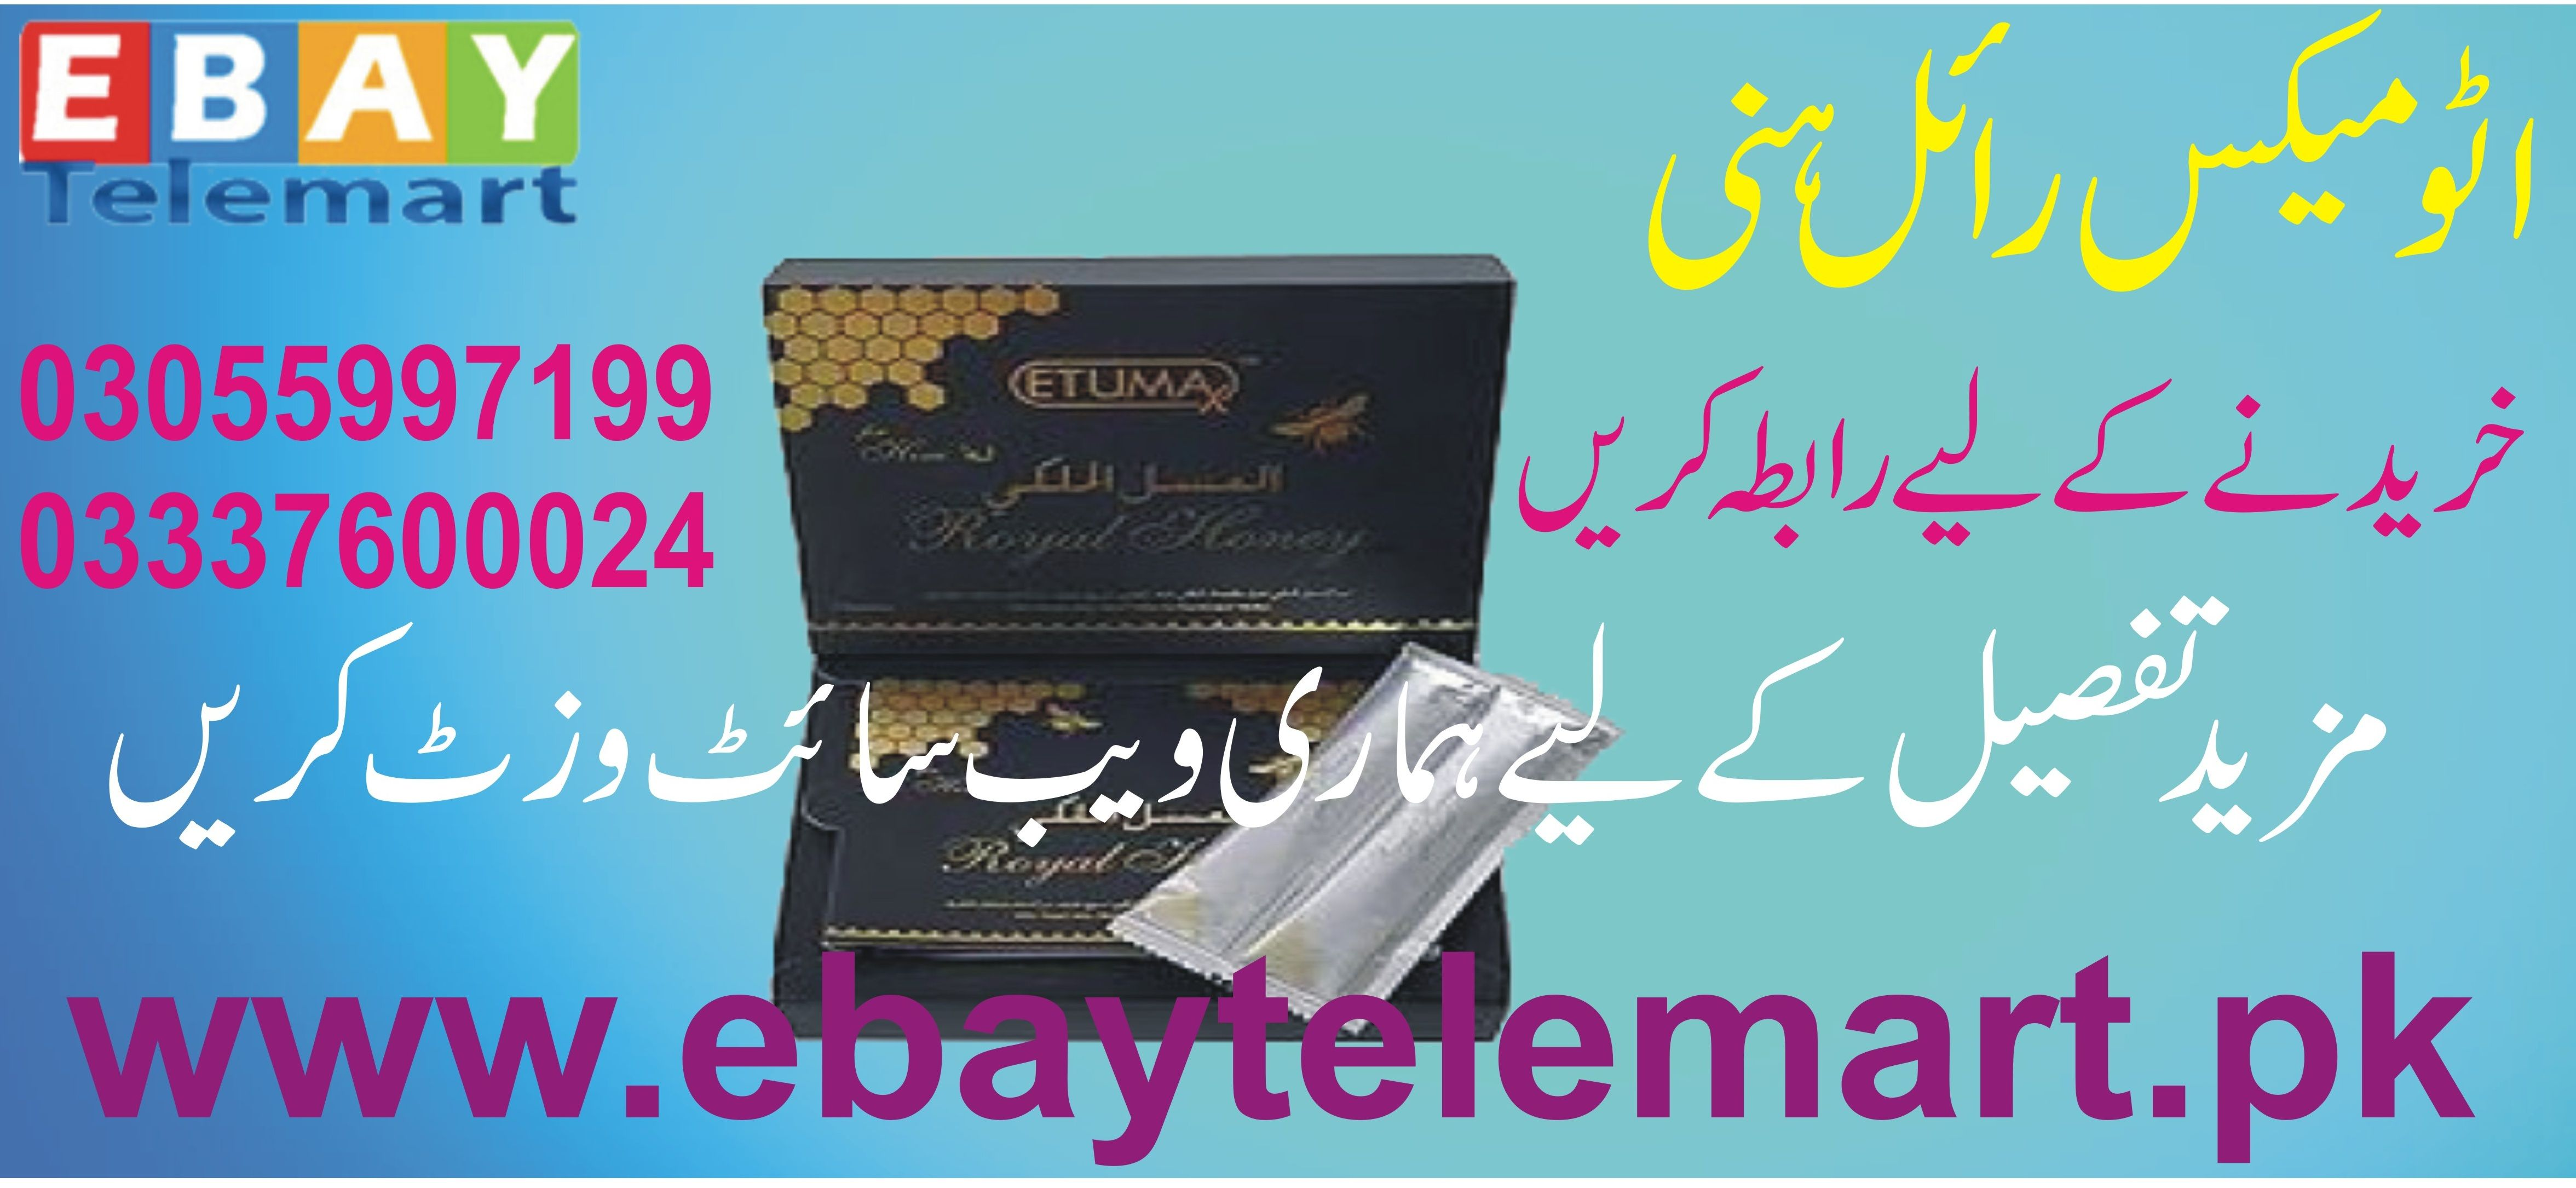 Etumax Royal Honey Price in Pakistan | Herbal oil, Honey price, How to  increase energy